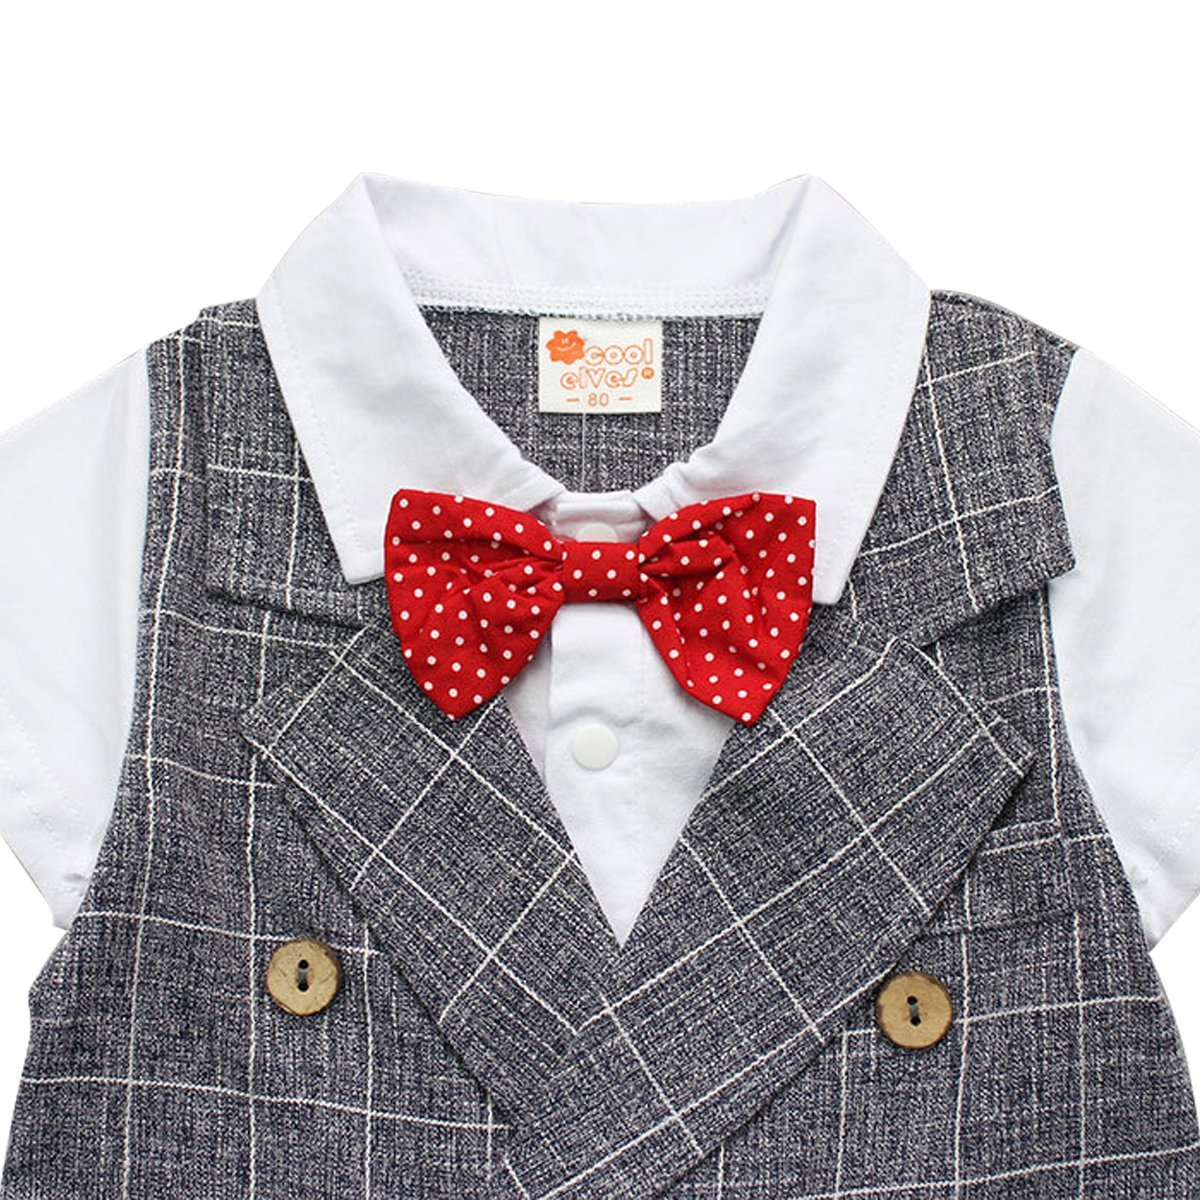 Kanodan Toddler Boy Plaid Gentleman Suits with Bow Summer Shorts Set 1-4Years